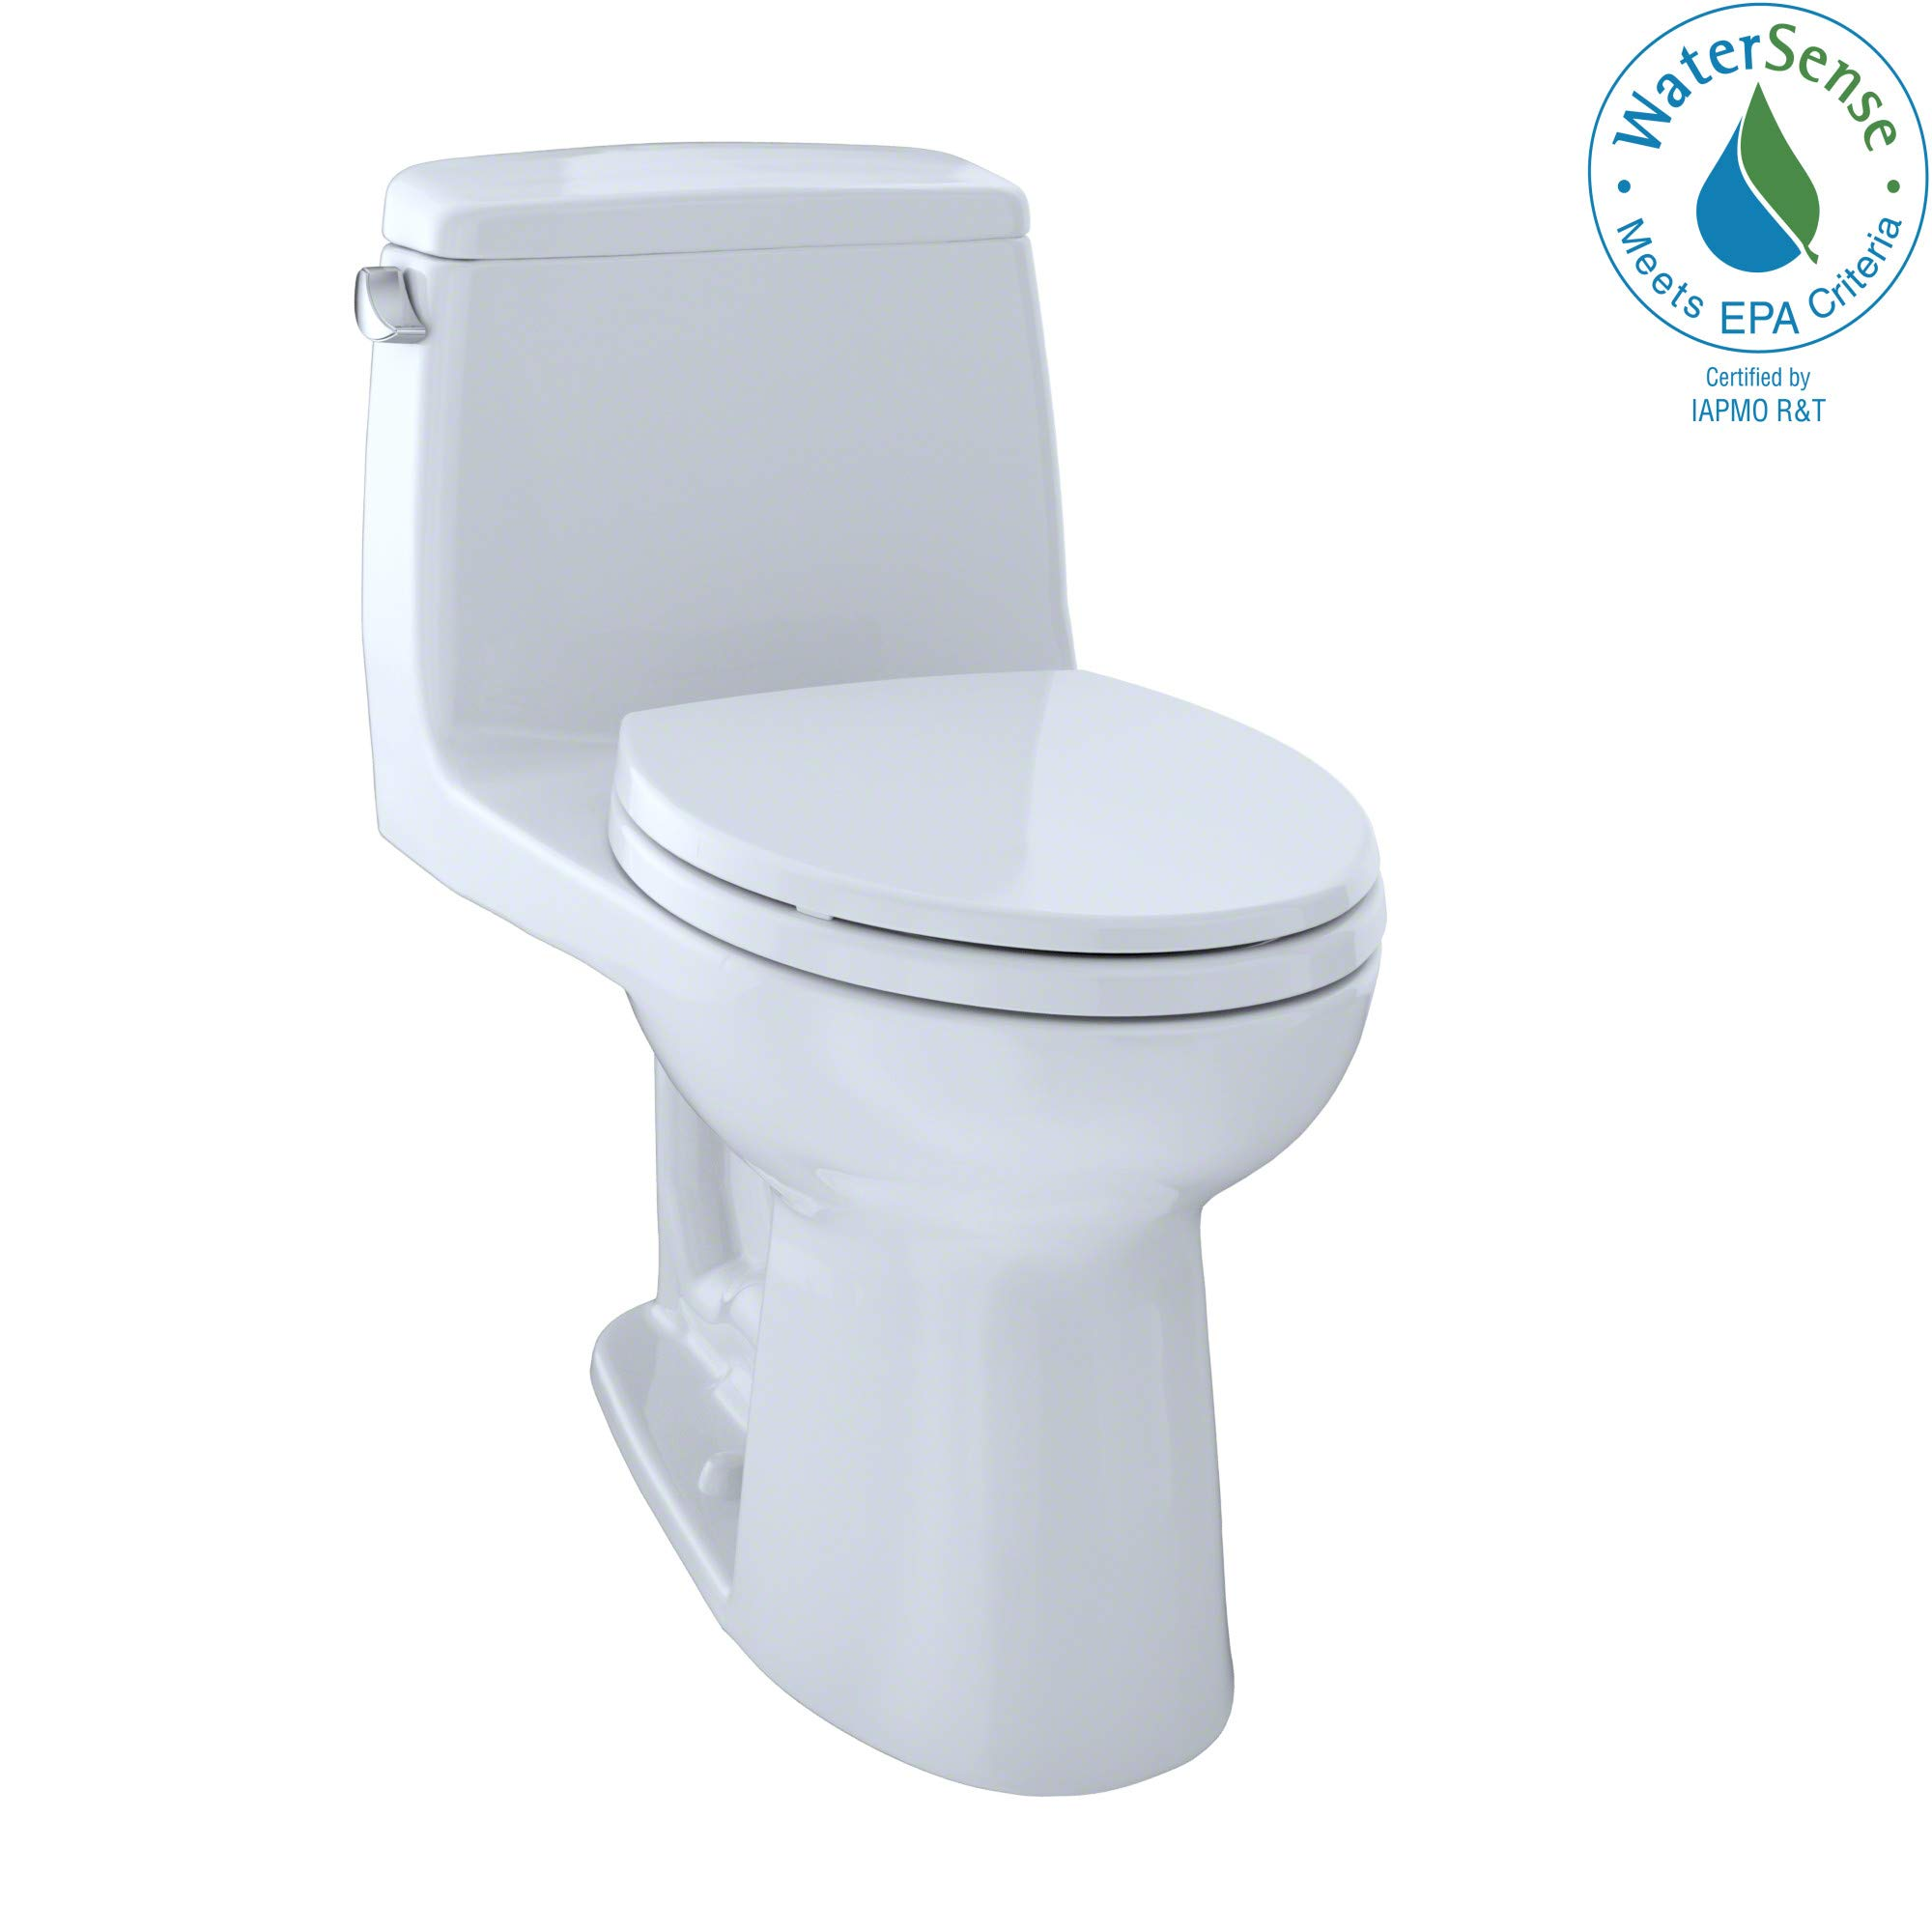 TOTO MS854114EL#01 Eco Ultramax ADA Elongated One Piece Toilet, Cotton White by TOTO